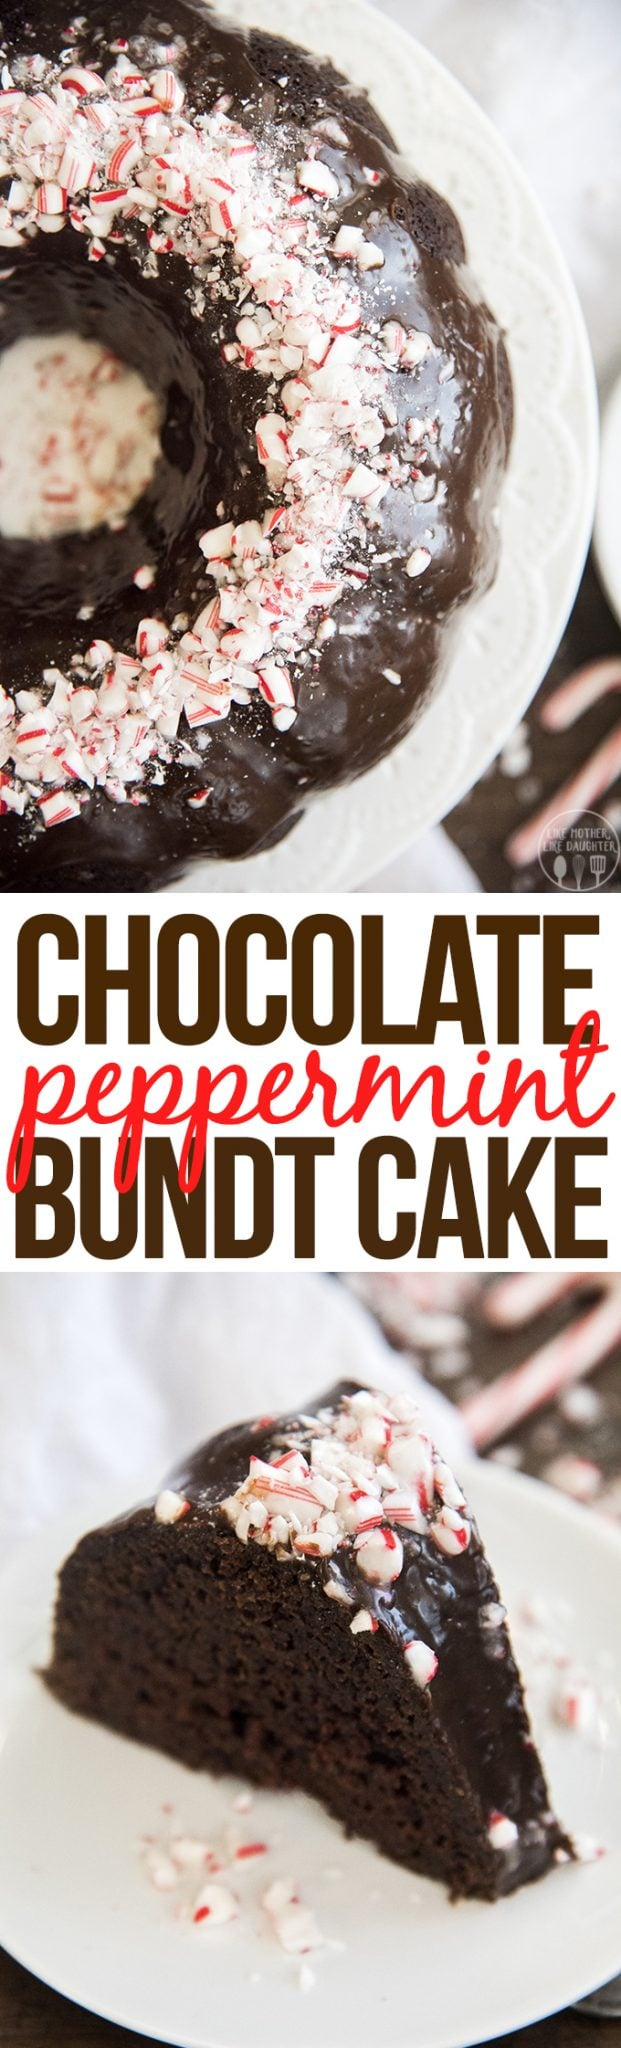 This chocolate peppermint bundt cake is the best holiday cake! Its moist, sweet, and rich with the perfect blend of chocolate and peppermint throughout, and topped with crunchy candy cane pieces!